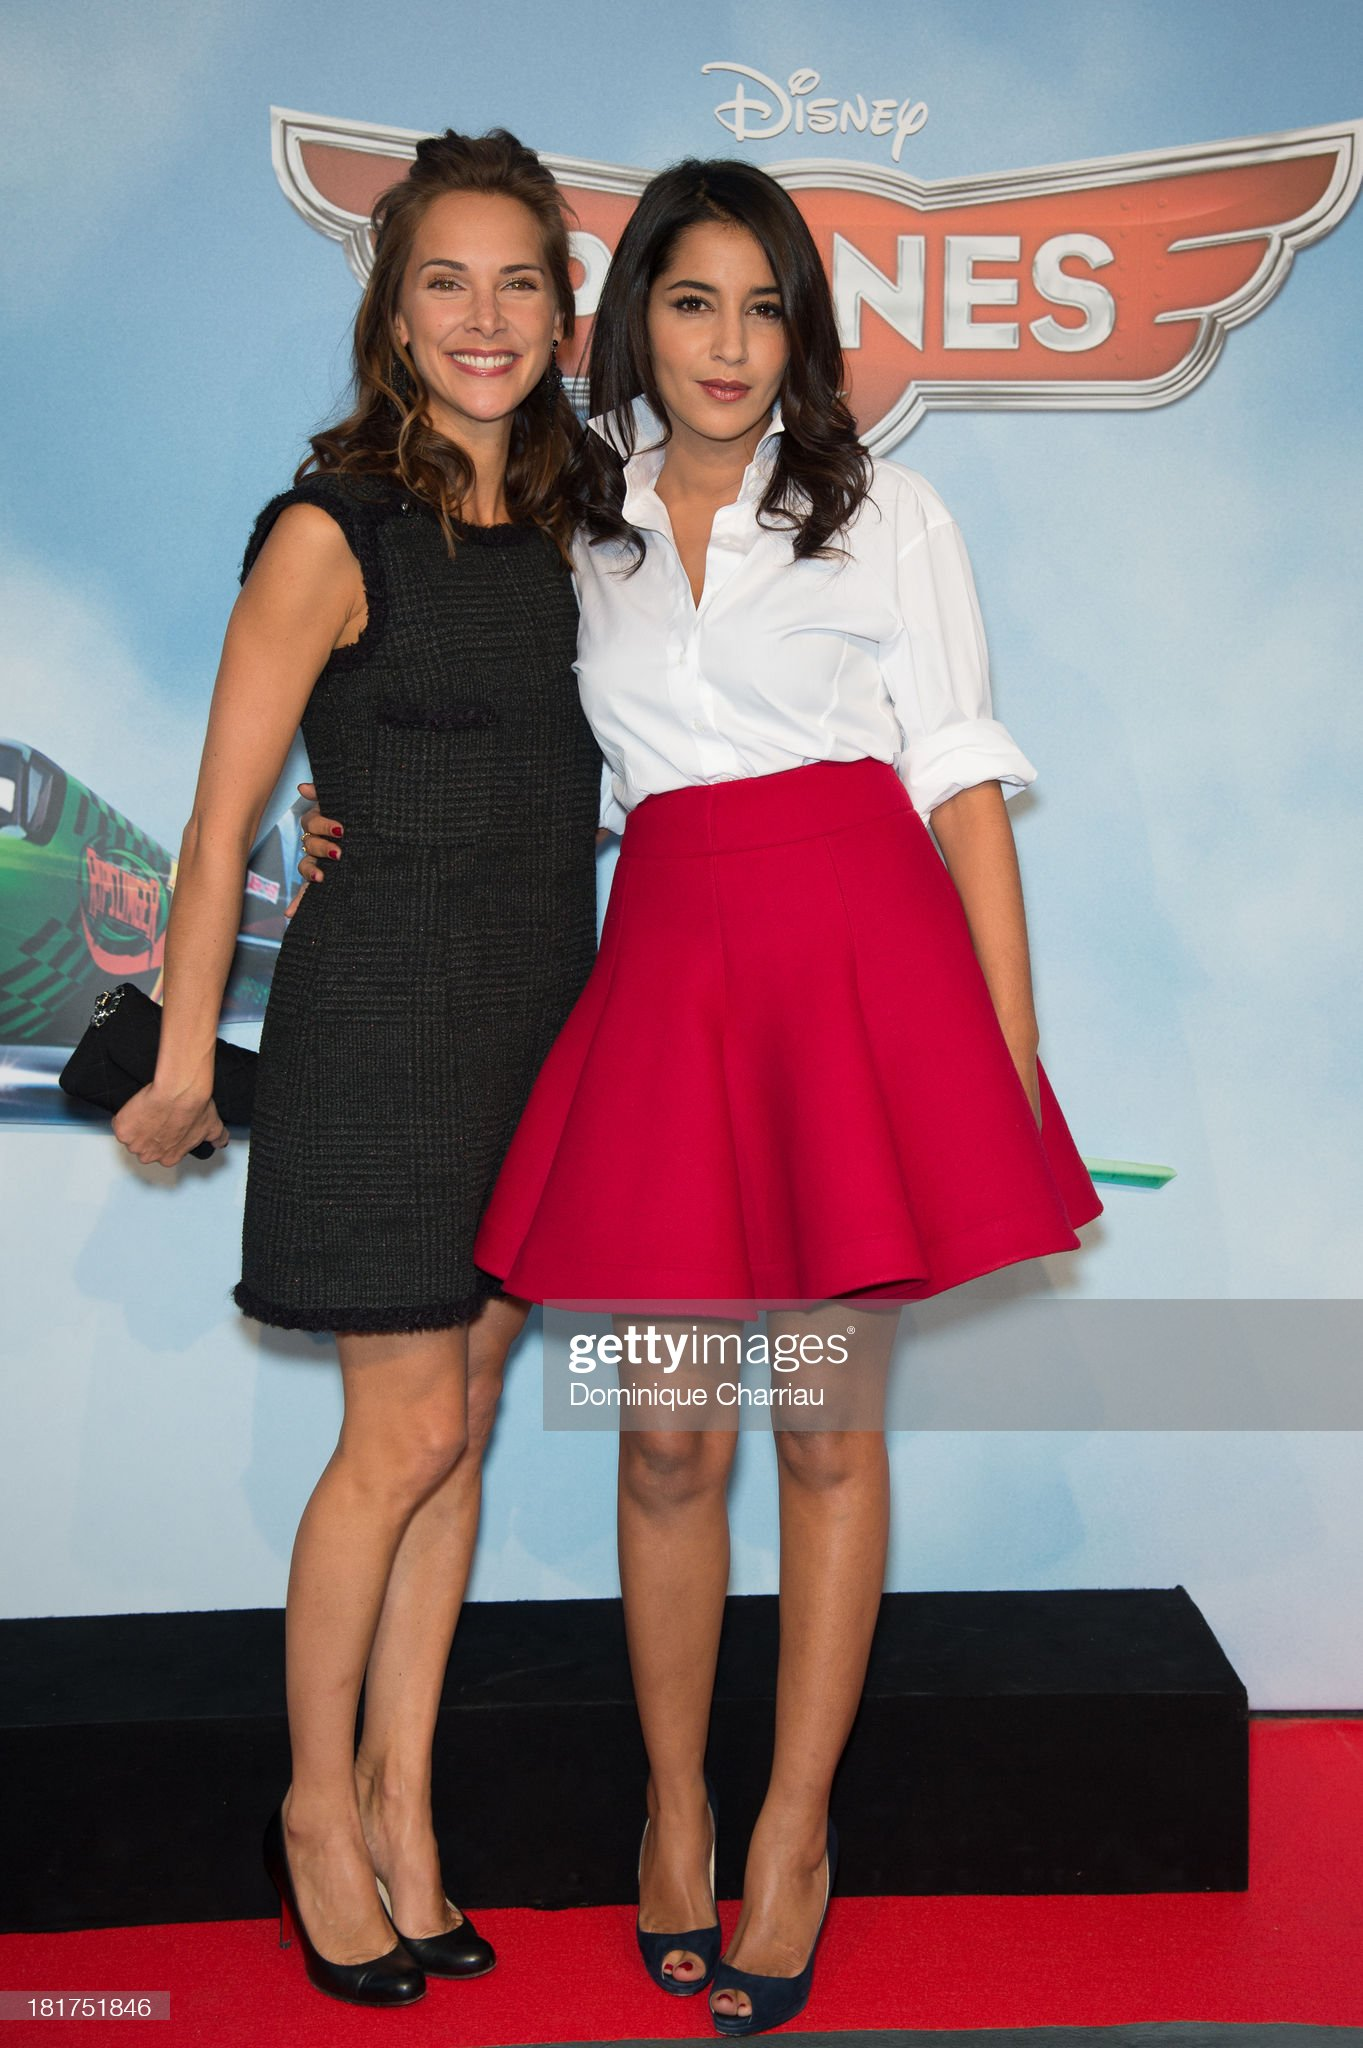 ¿Cuánto mide Melissa Theuriau? - Altura - Real height Melissa-theuriau-and-leila-bekhti-attend-the-planes-paris-premiere-at-picture-id181751846?s=2048x2048